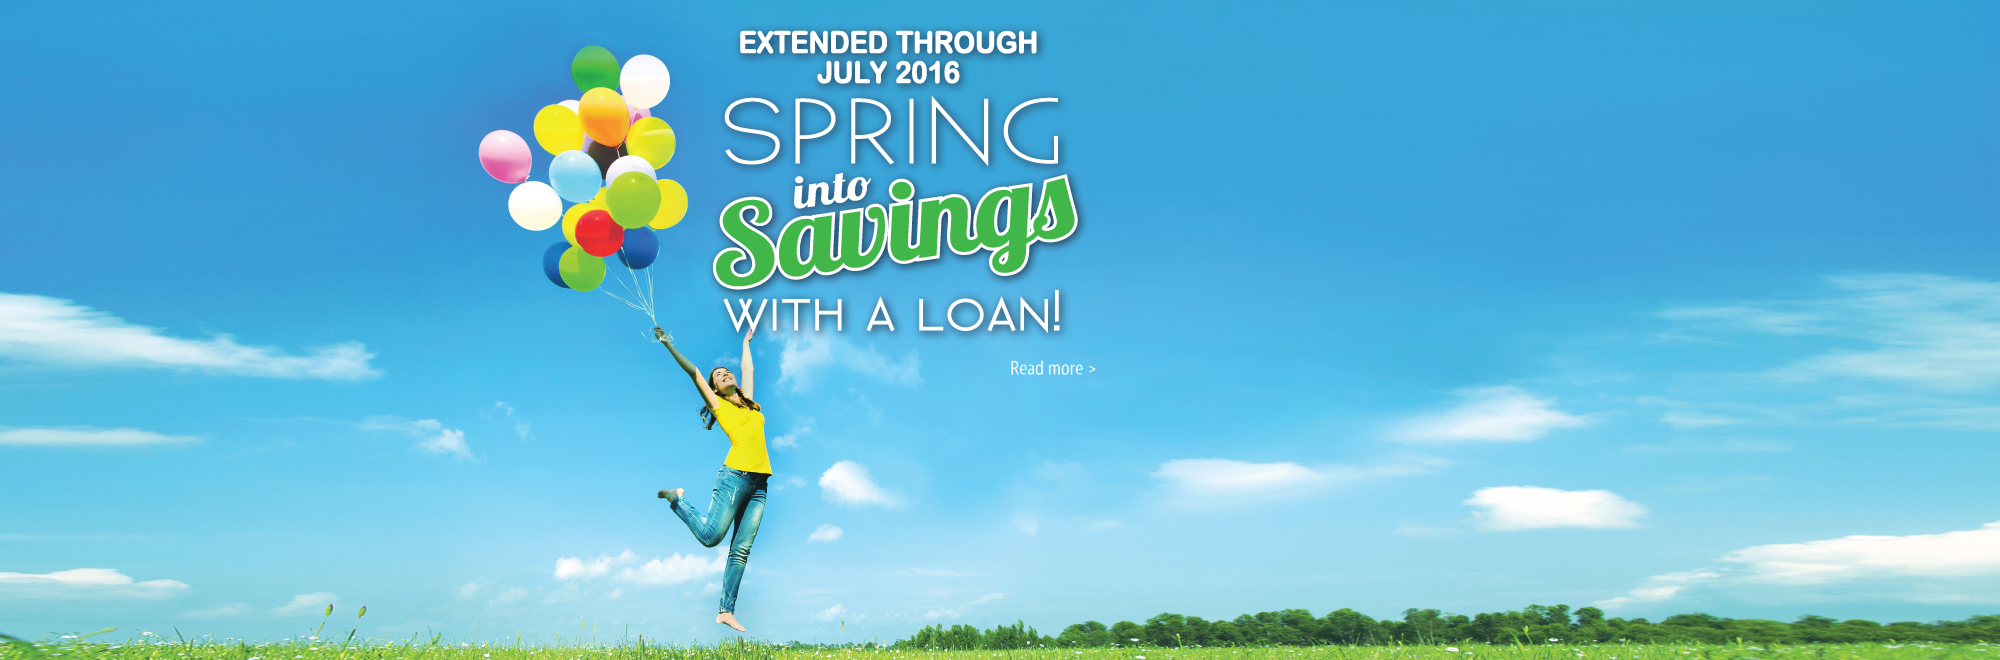 Spring into Savings with a Loan!